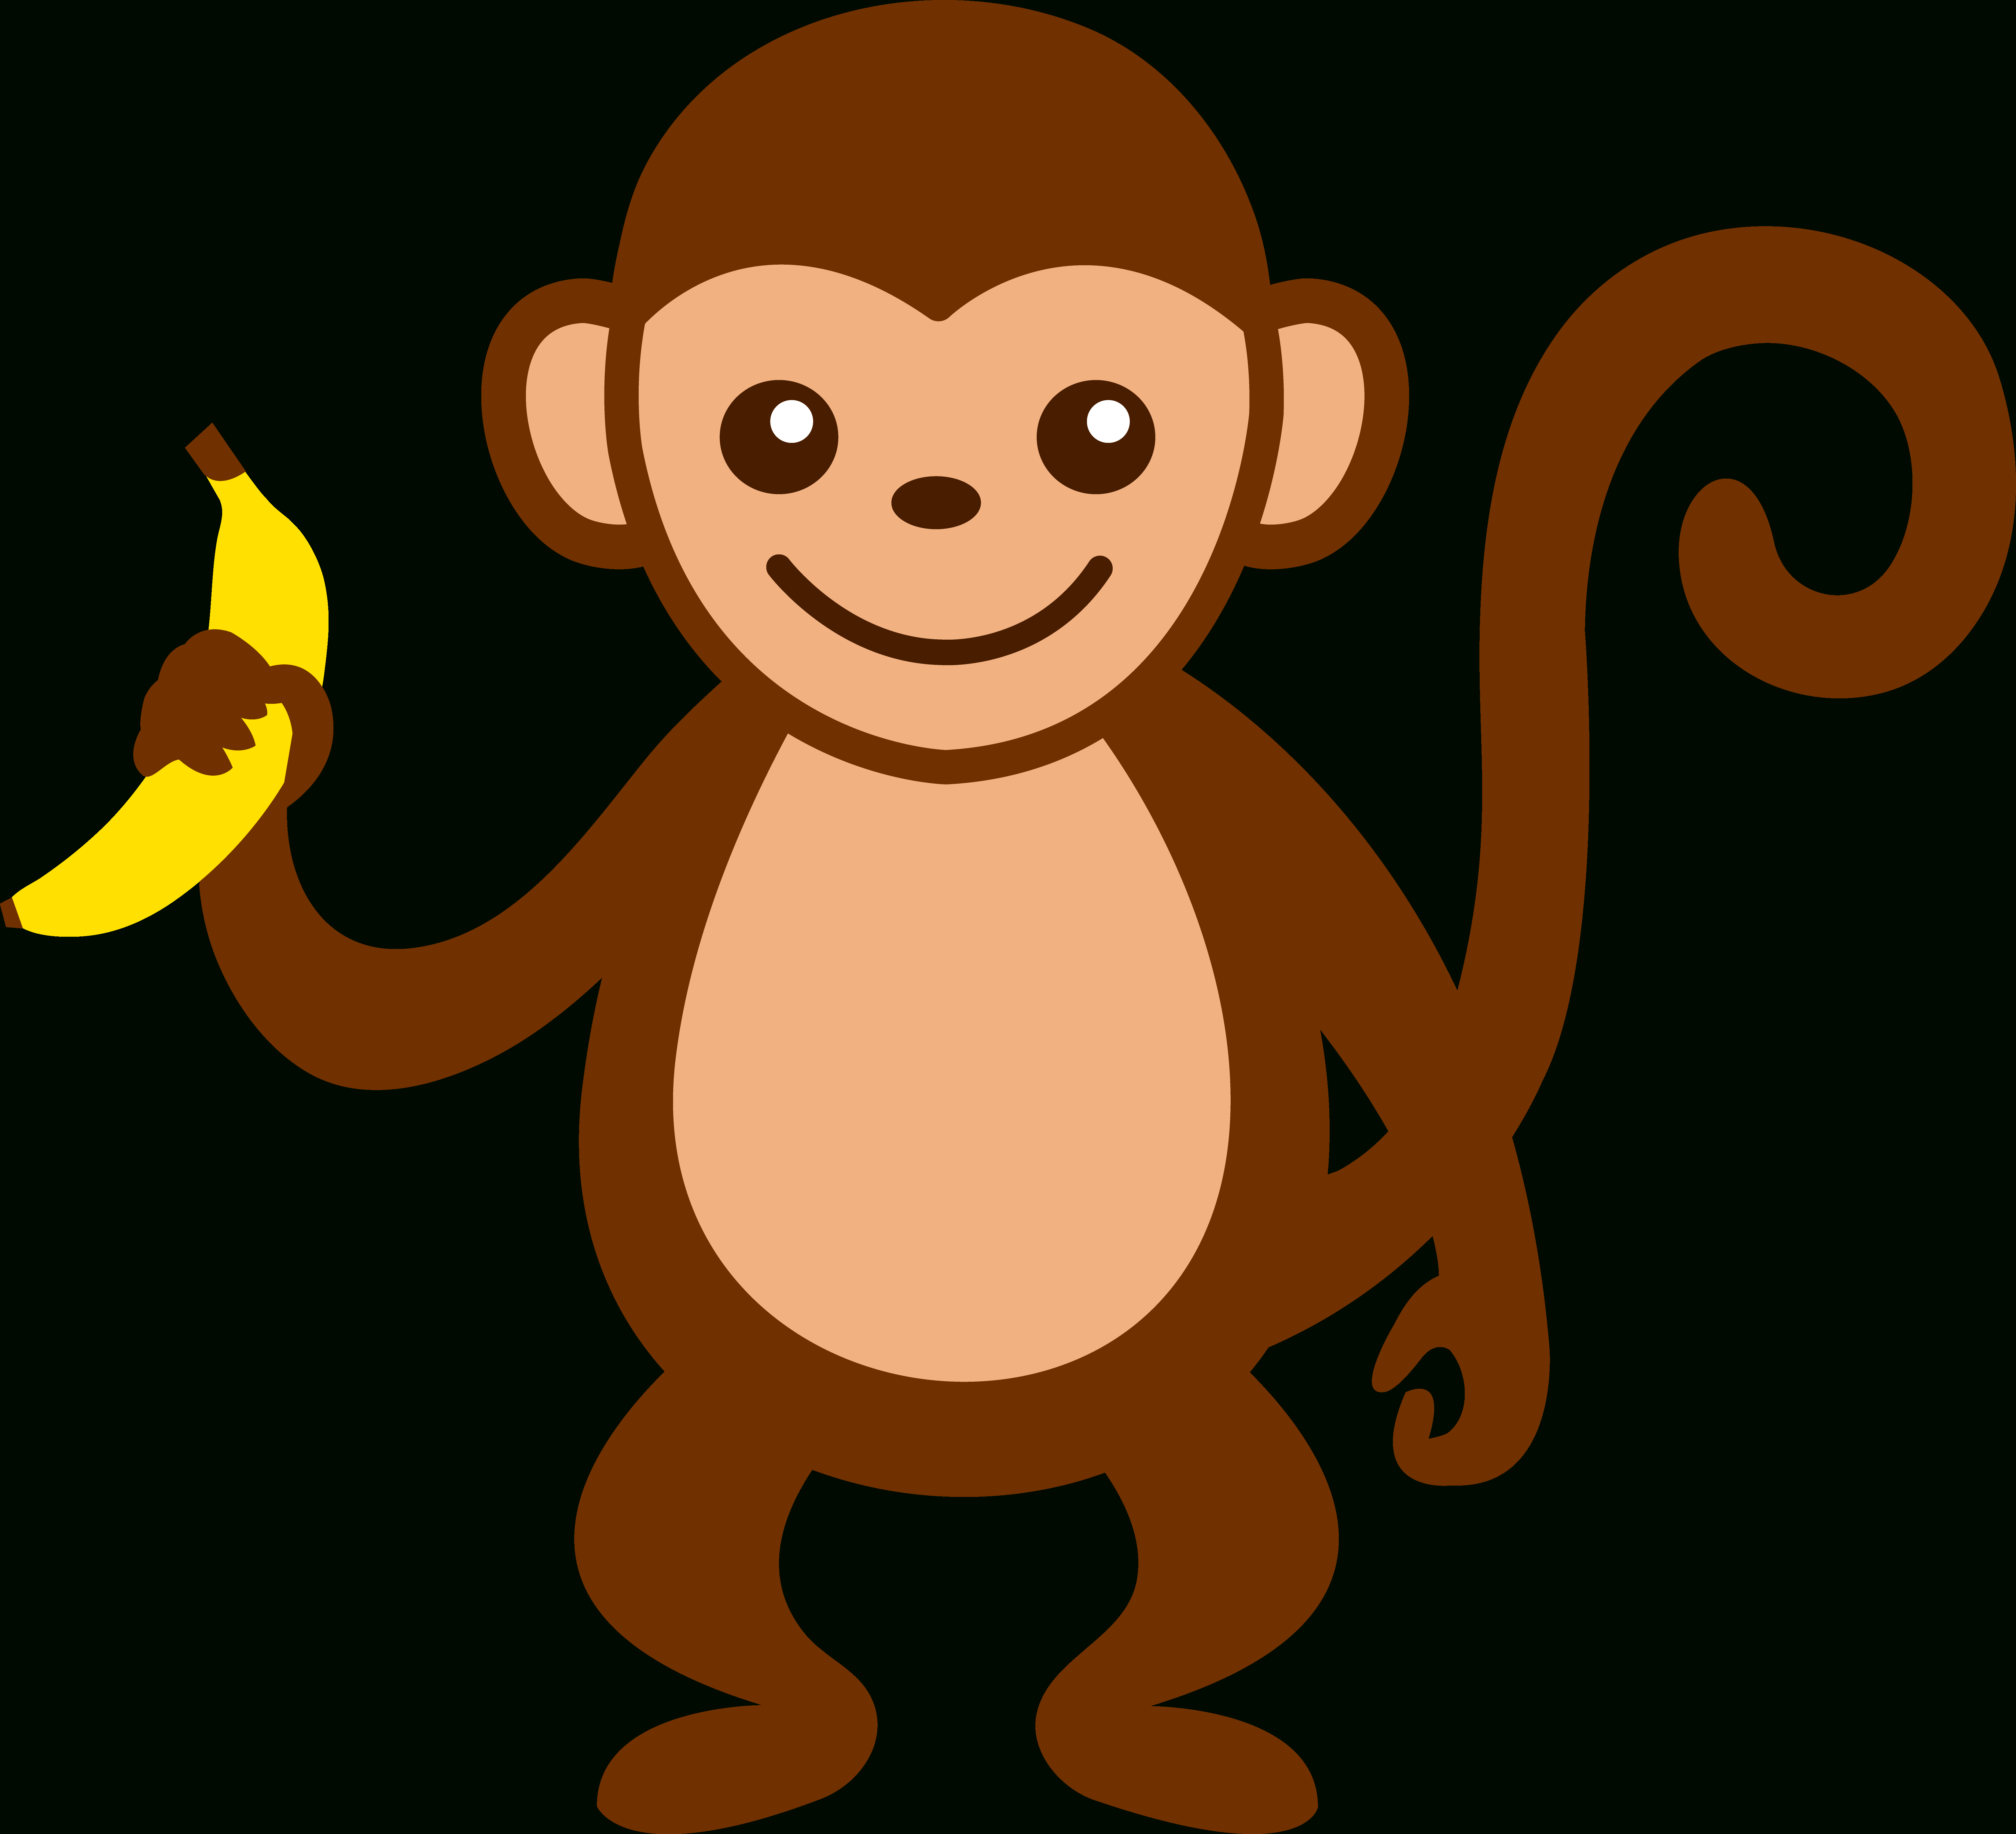 Cartoon Monkey Clip Art | Cute Monkey With Banana - Free Clip Art - Free Printable Sock Monkey Clip Art